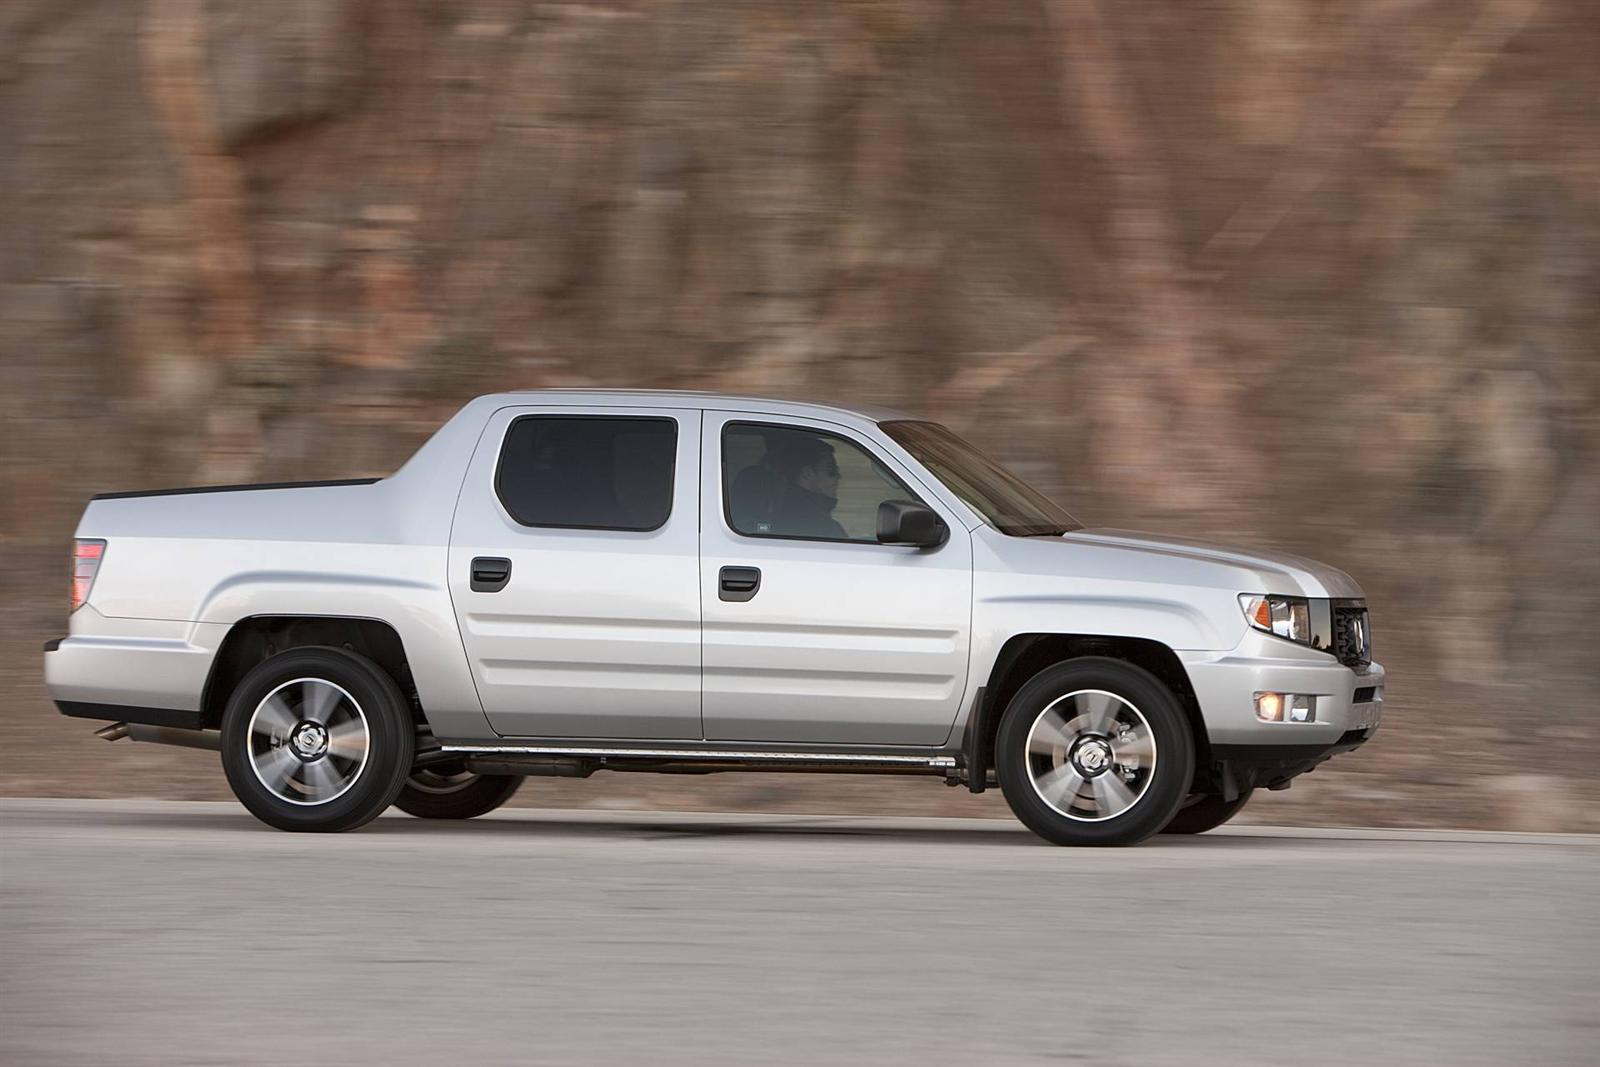 2013 honda ridgeline pictures information and specs. Black Bedroom Furniture Sets. Home Design Ideas